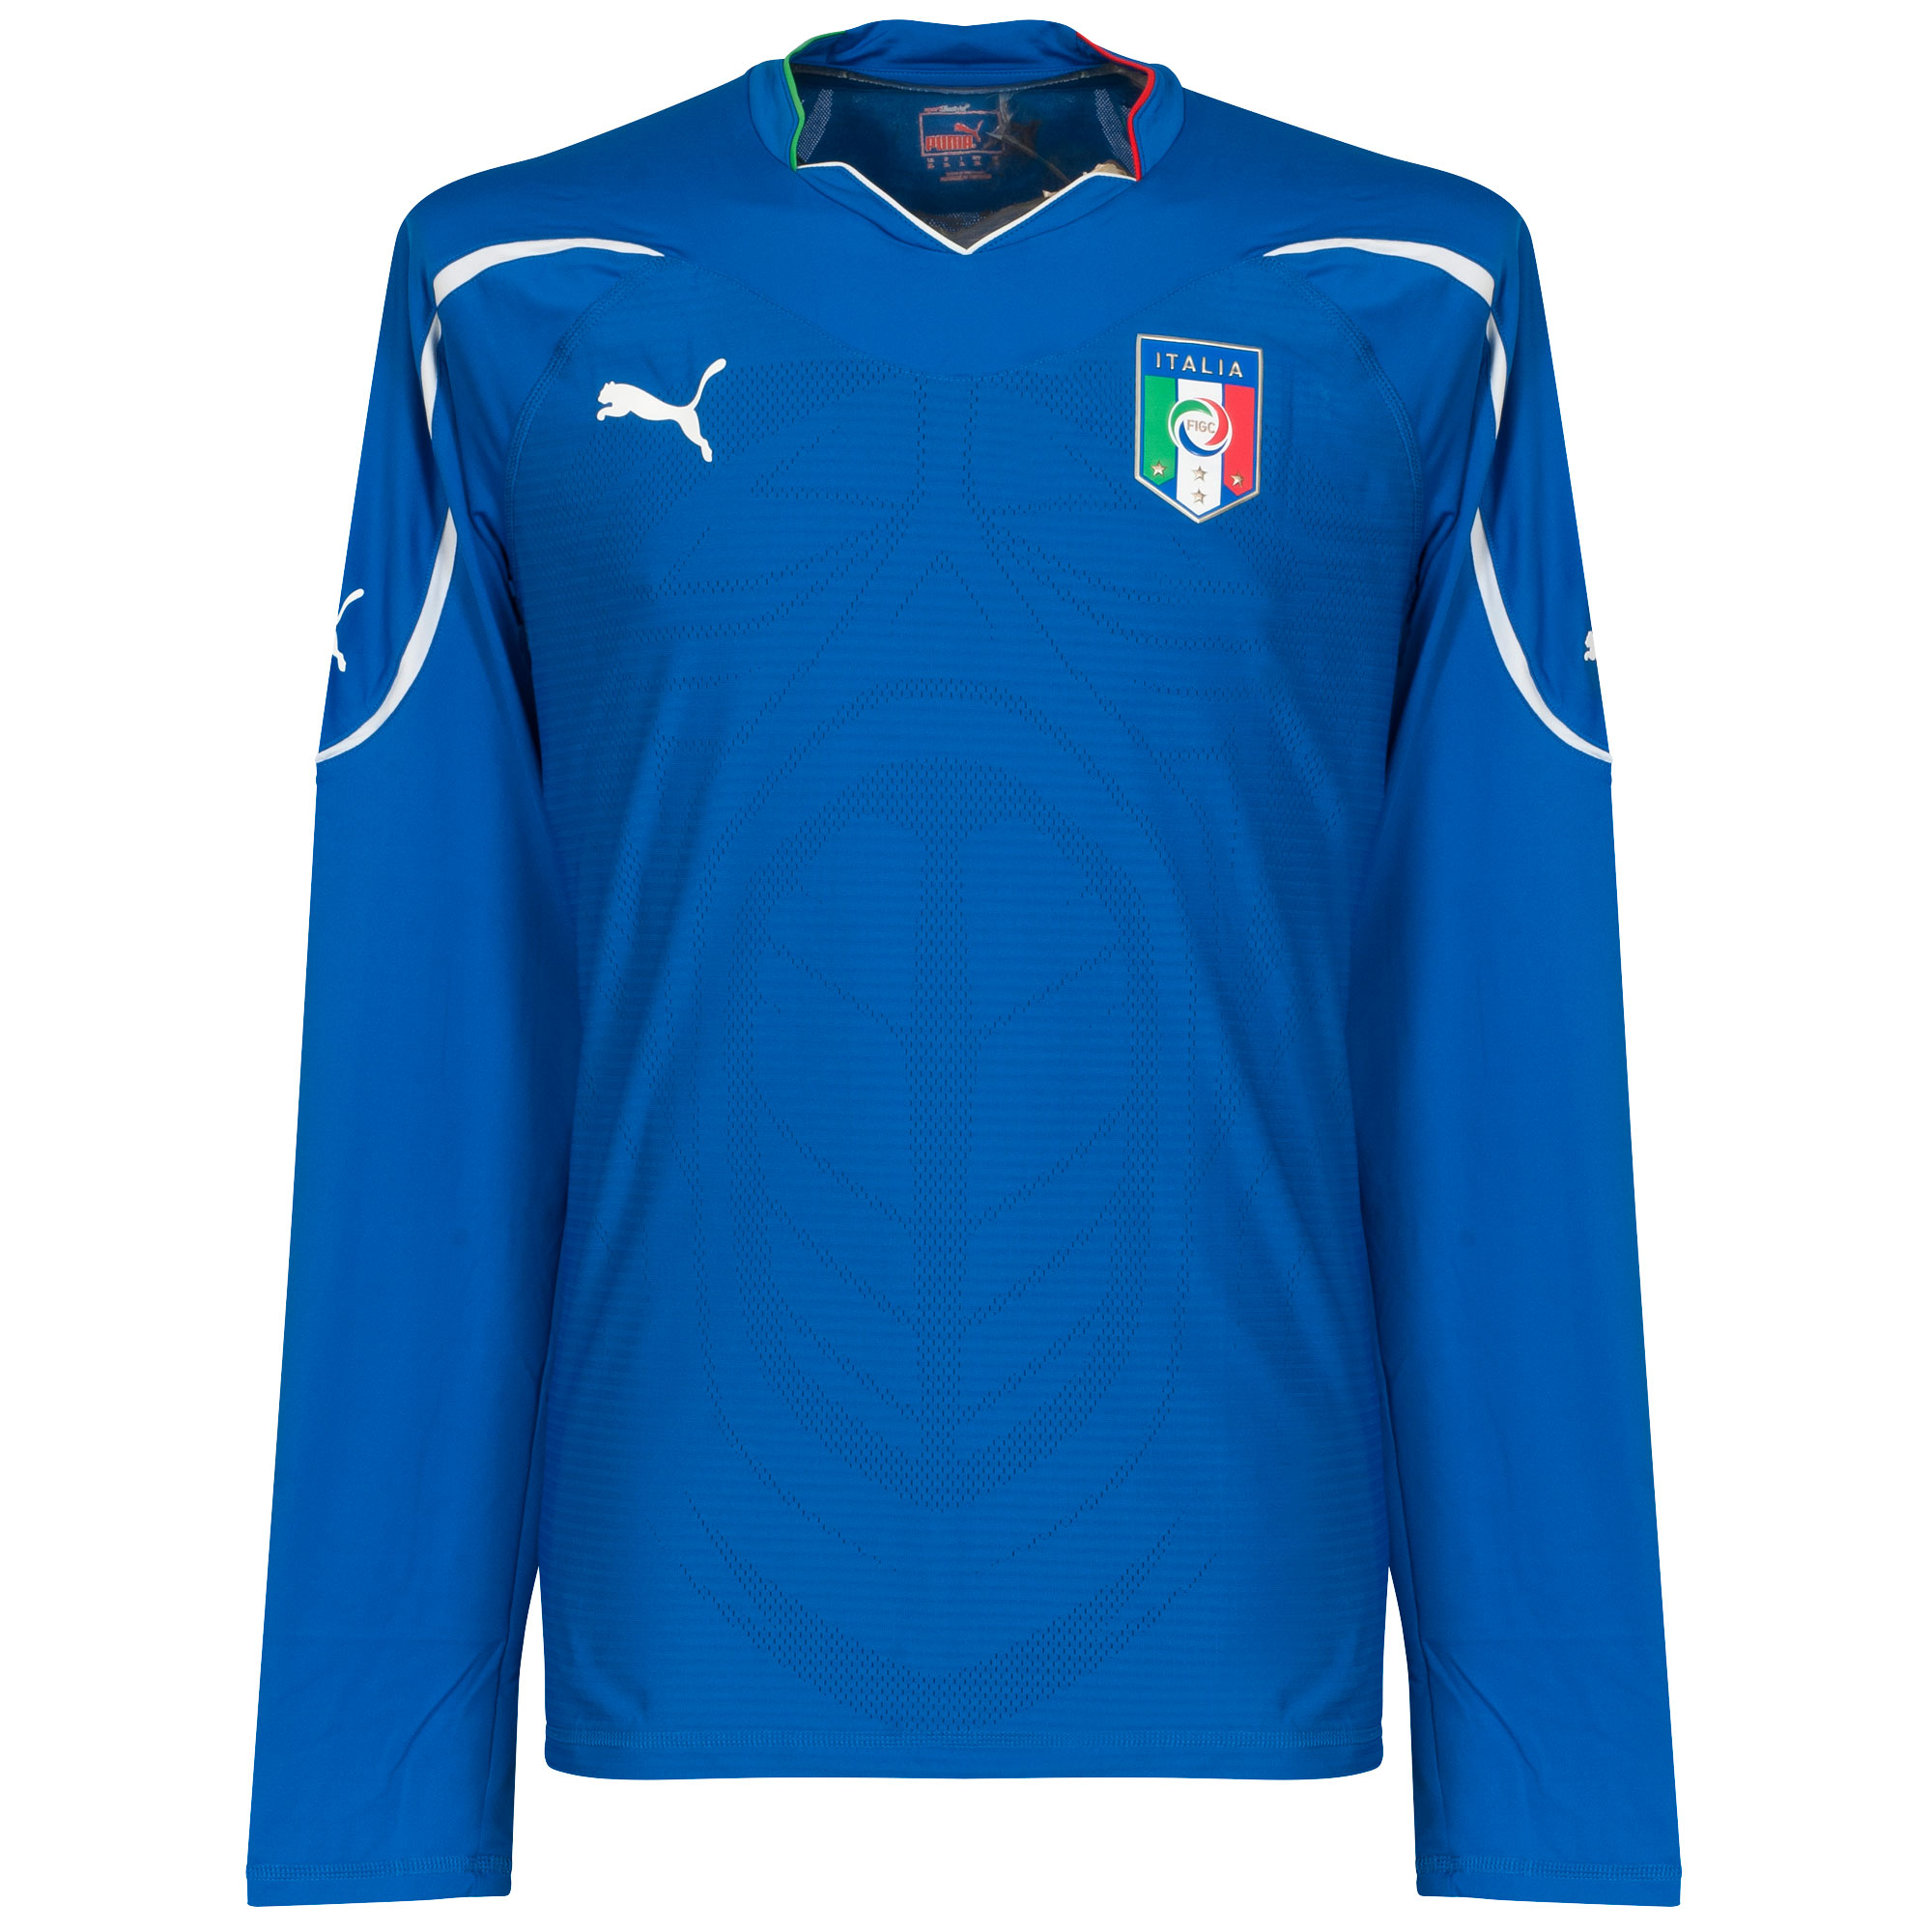 Italy Home long sleeve Player Issue Shirt 2010 2011 - XL